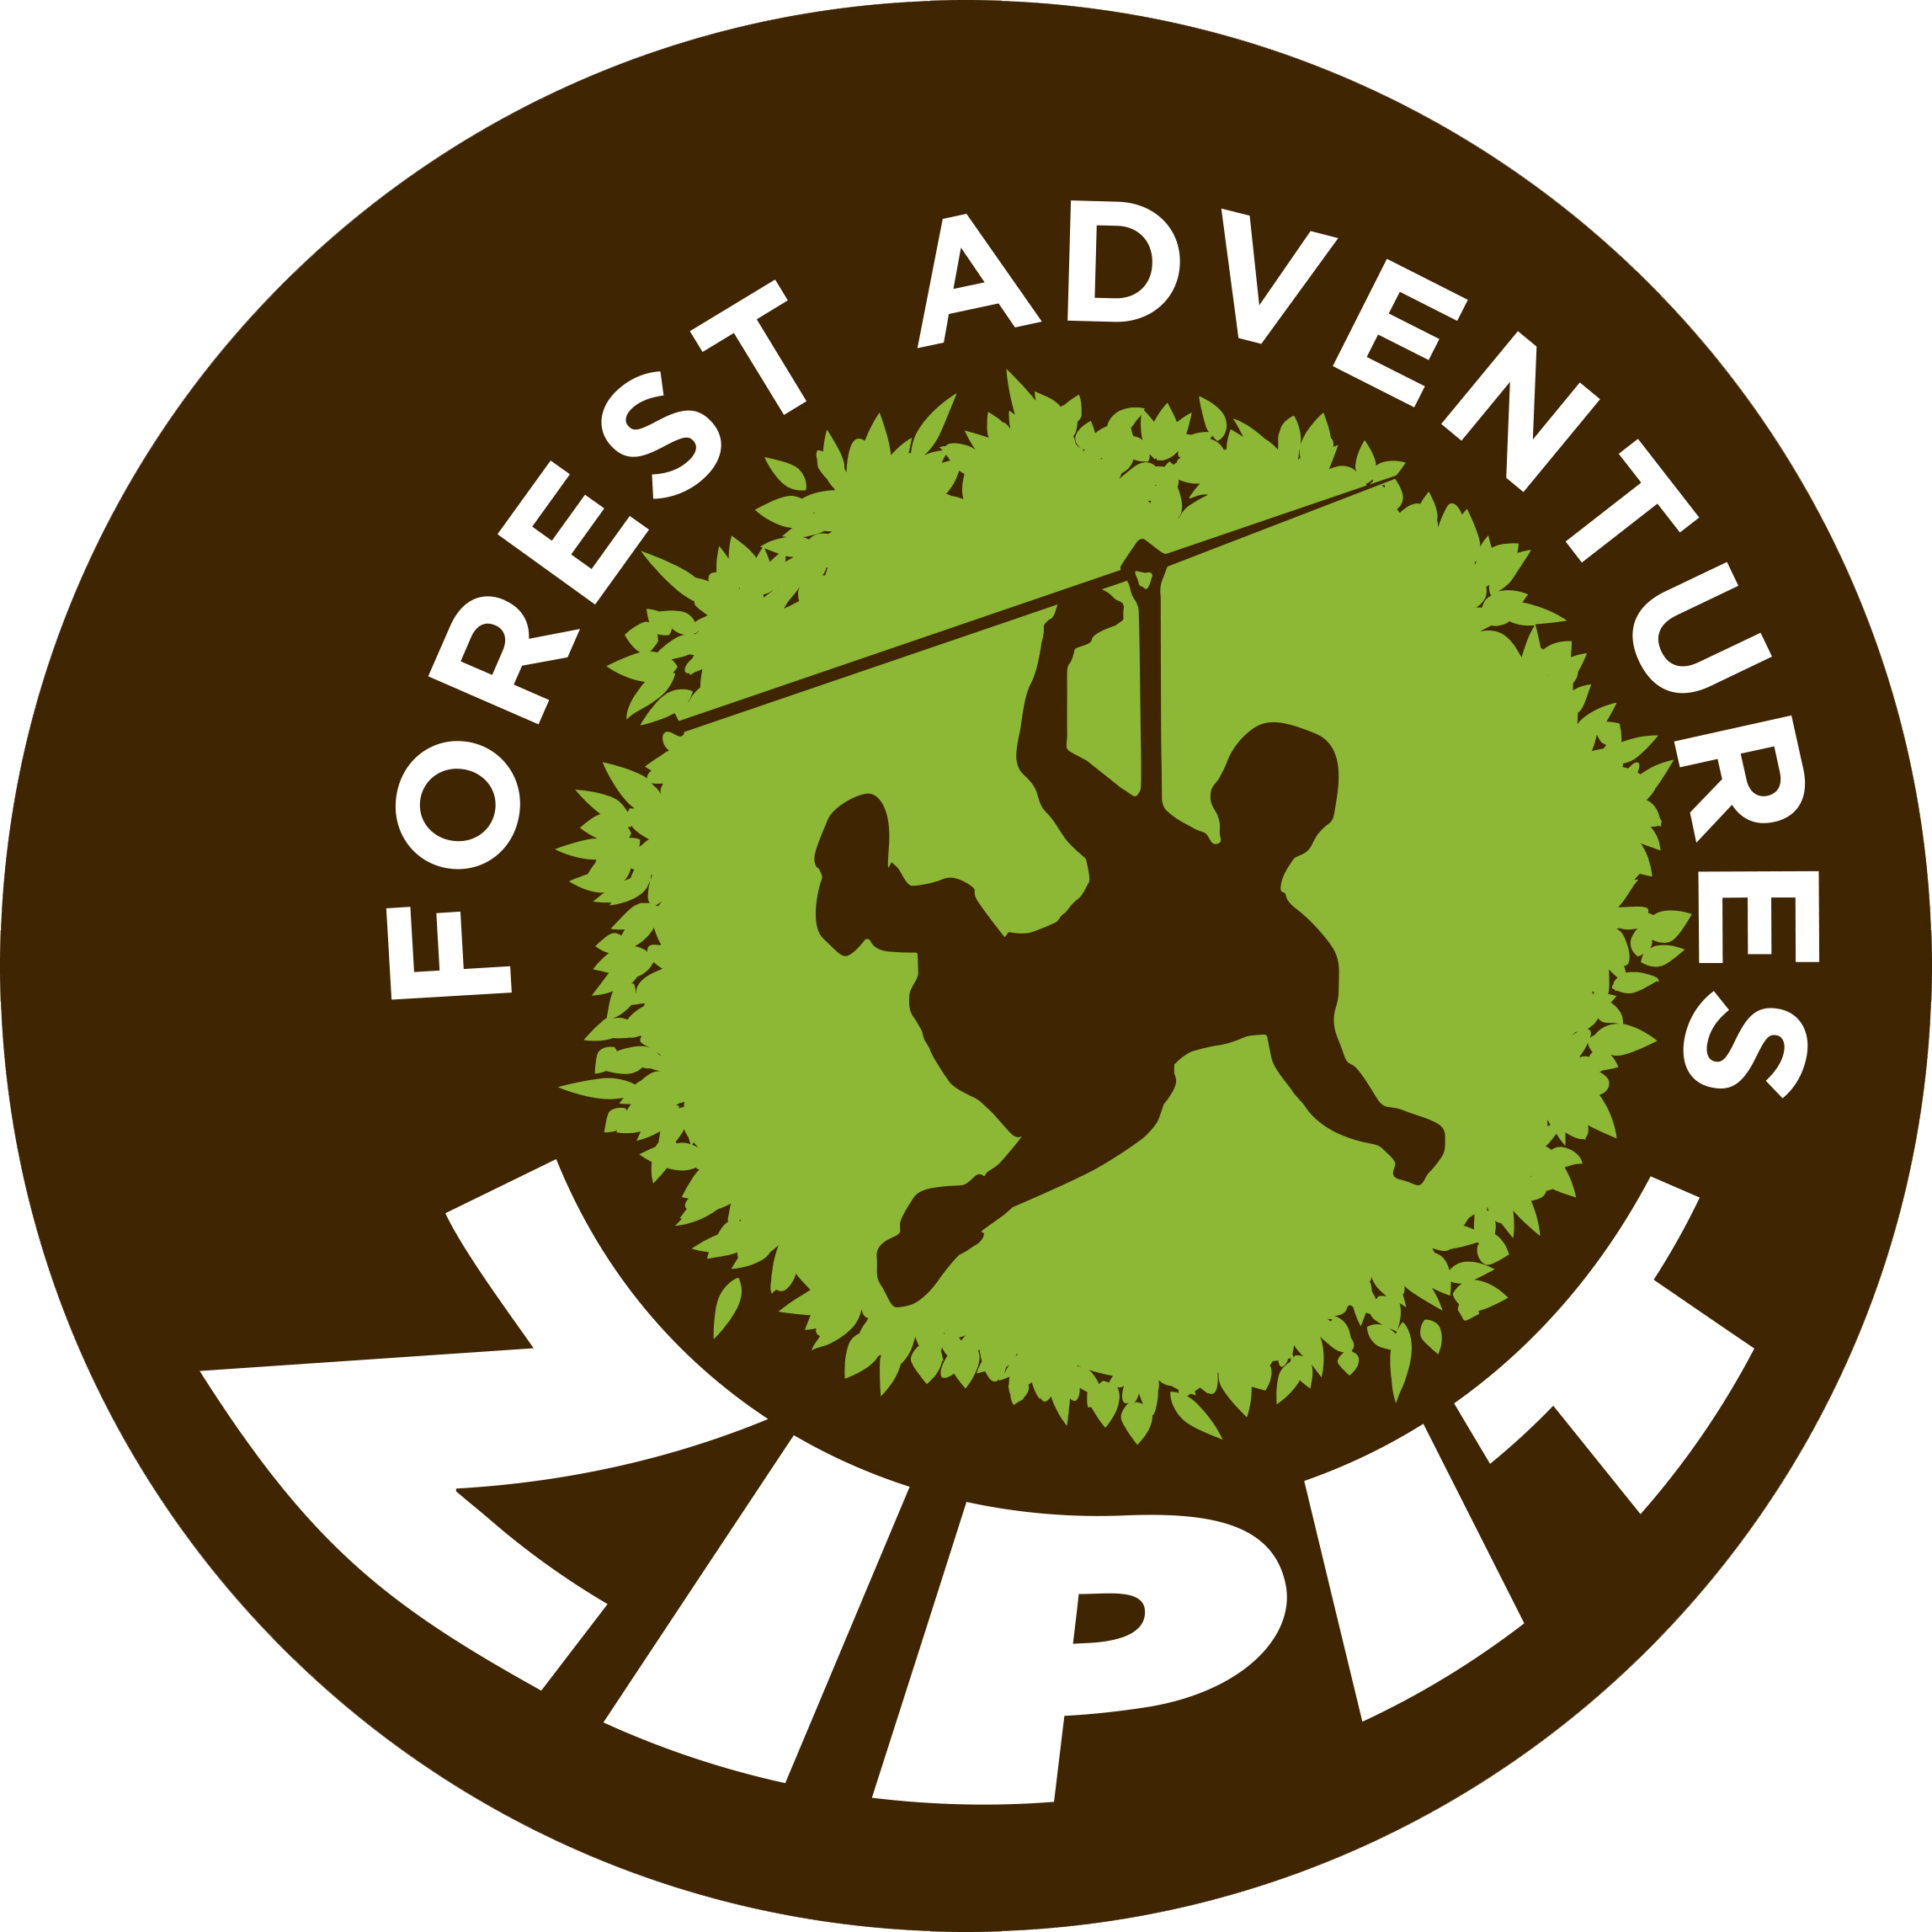 Zipit Forest Adventures, Dublin logo